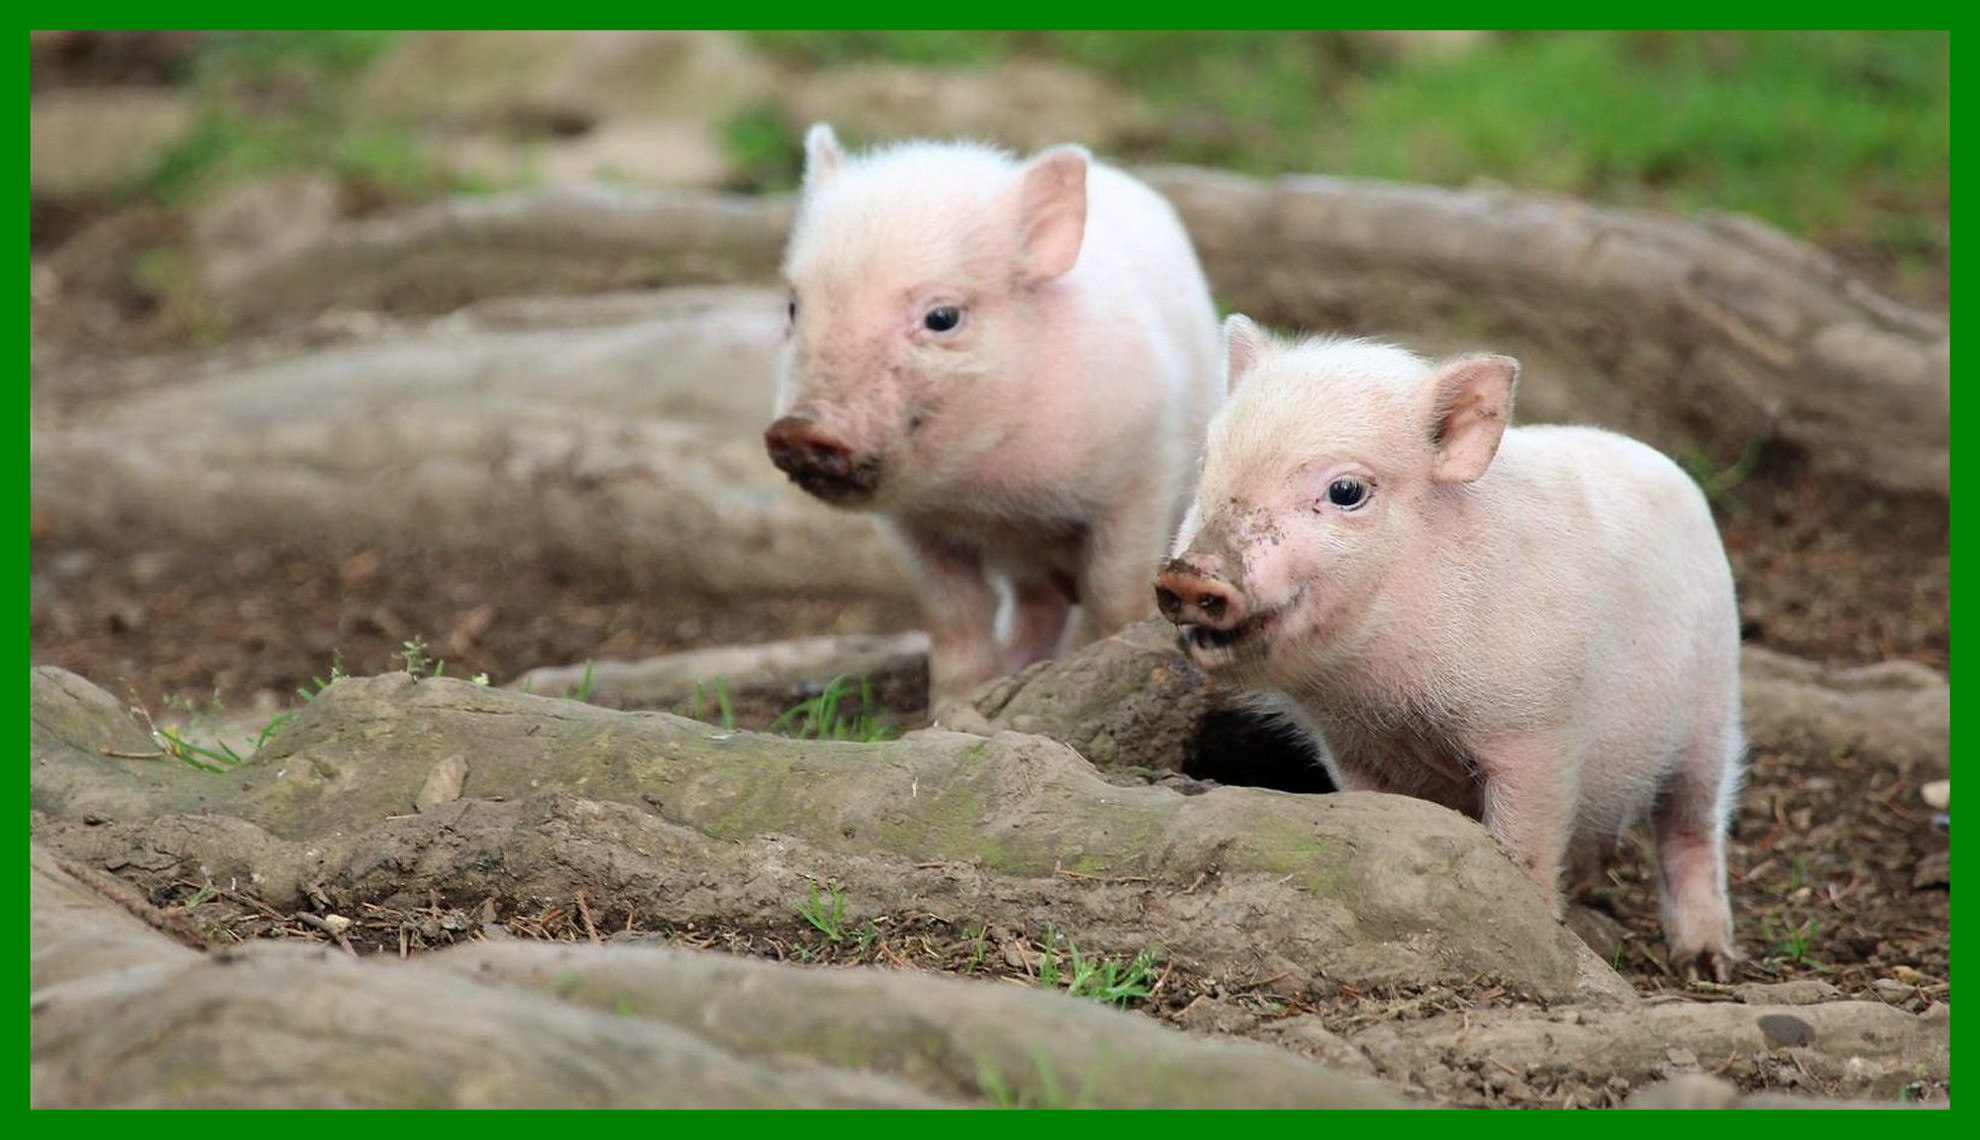 Res: 1980x1140, The Best Two Baby Pigs Cute Wallpaper P I G S Pict Of Trends And Style Cute Baby  Pigs